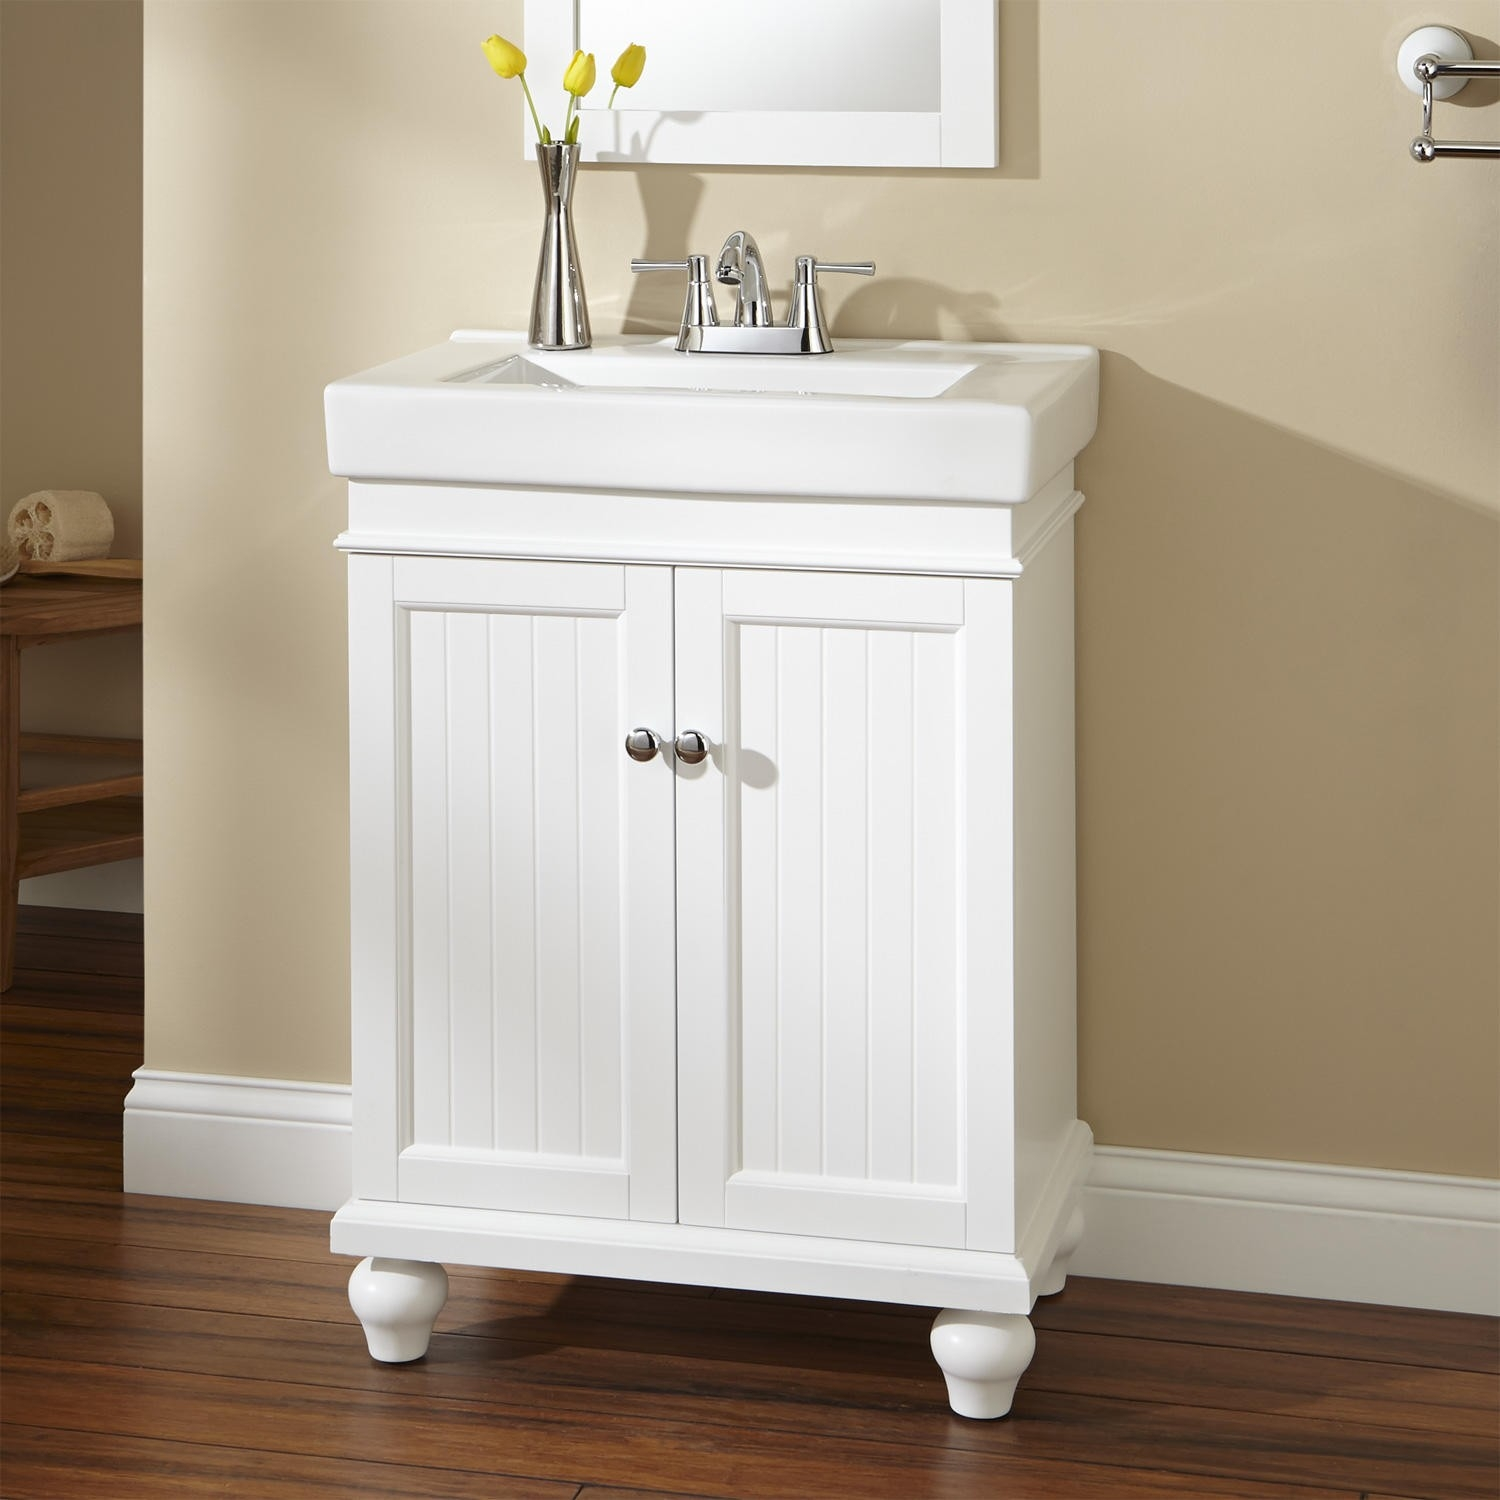 18 Inch Bathroom Vanity Lowes